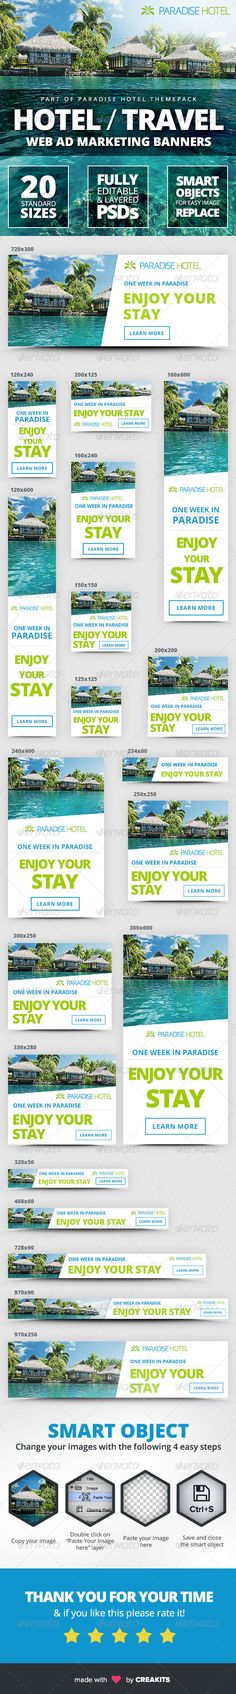 Hotel - Travel Web Ad Marketing Banners Template PSD | Buy and Download: http://graphicriver.net/item/hotel-travel-web-ad-marketing-banners/8315608?WT.ac=category_thumb&WT.z_author=creakits&ref=ksioks